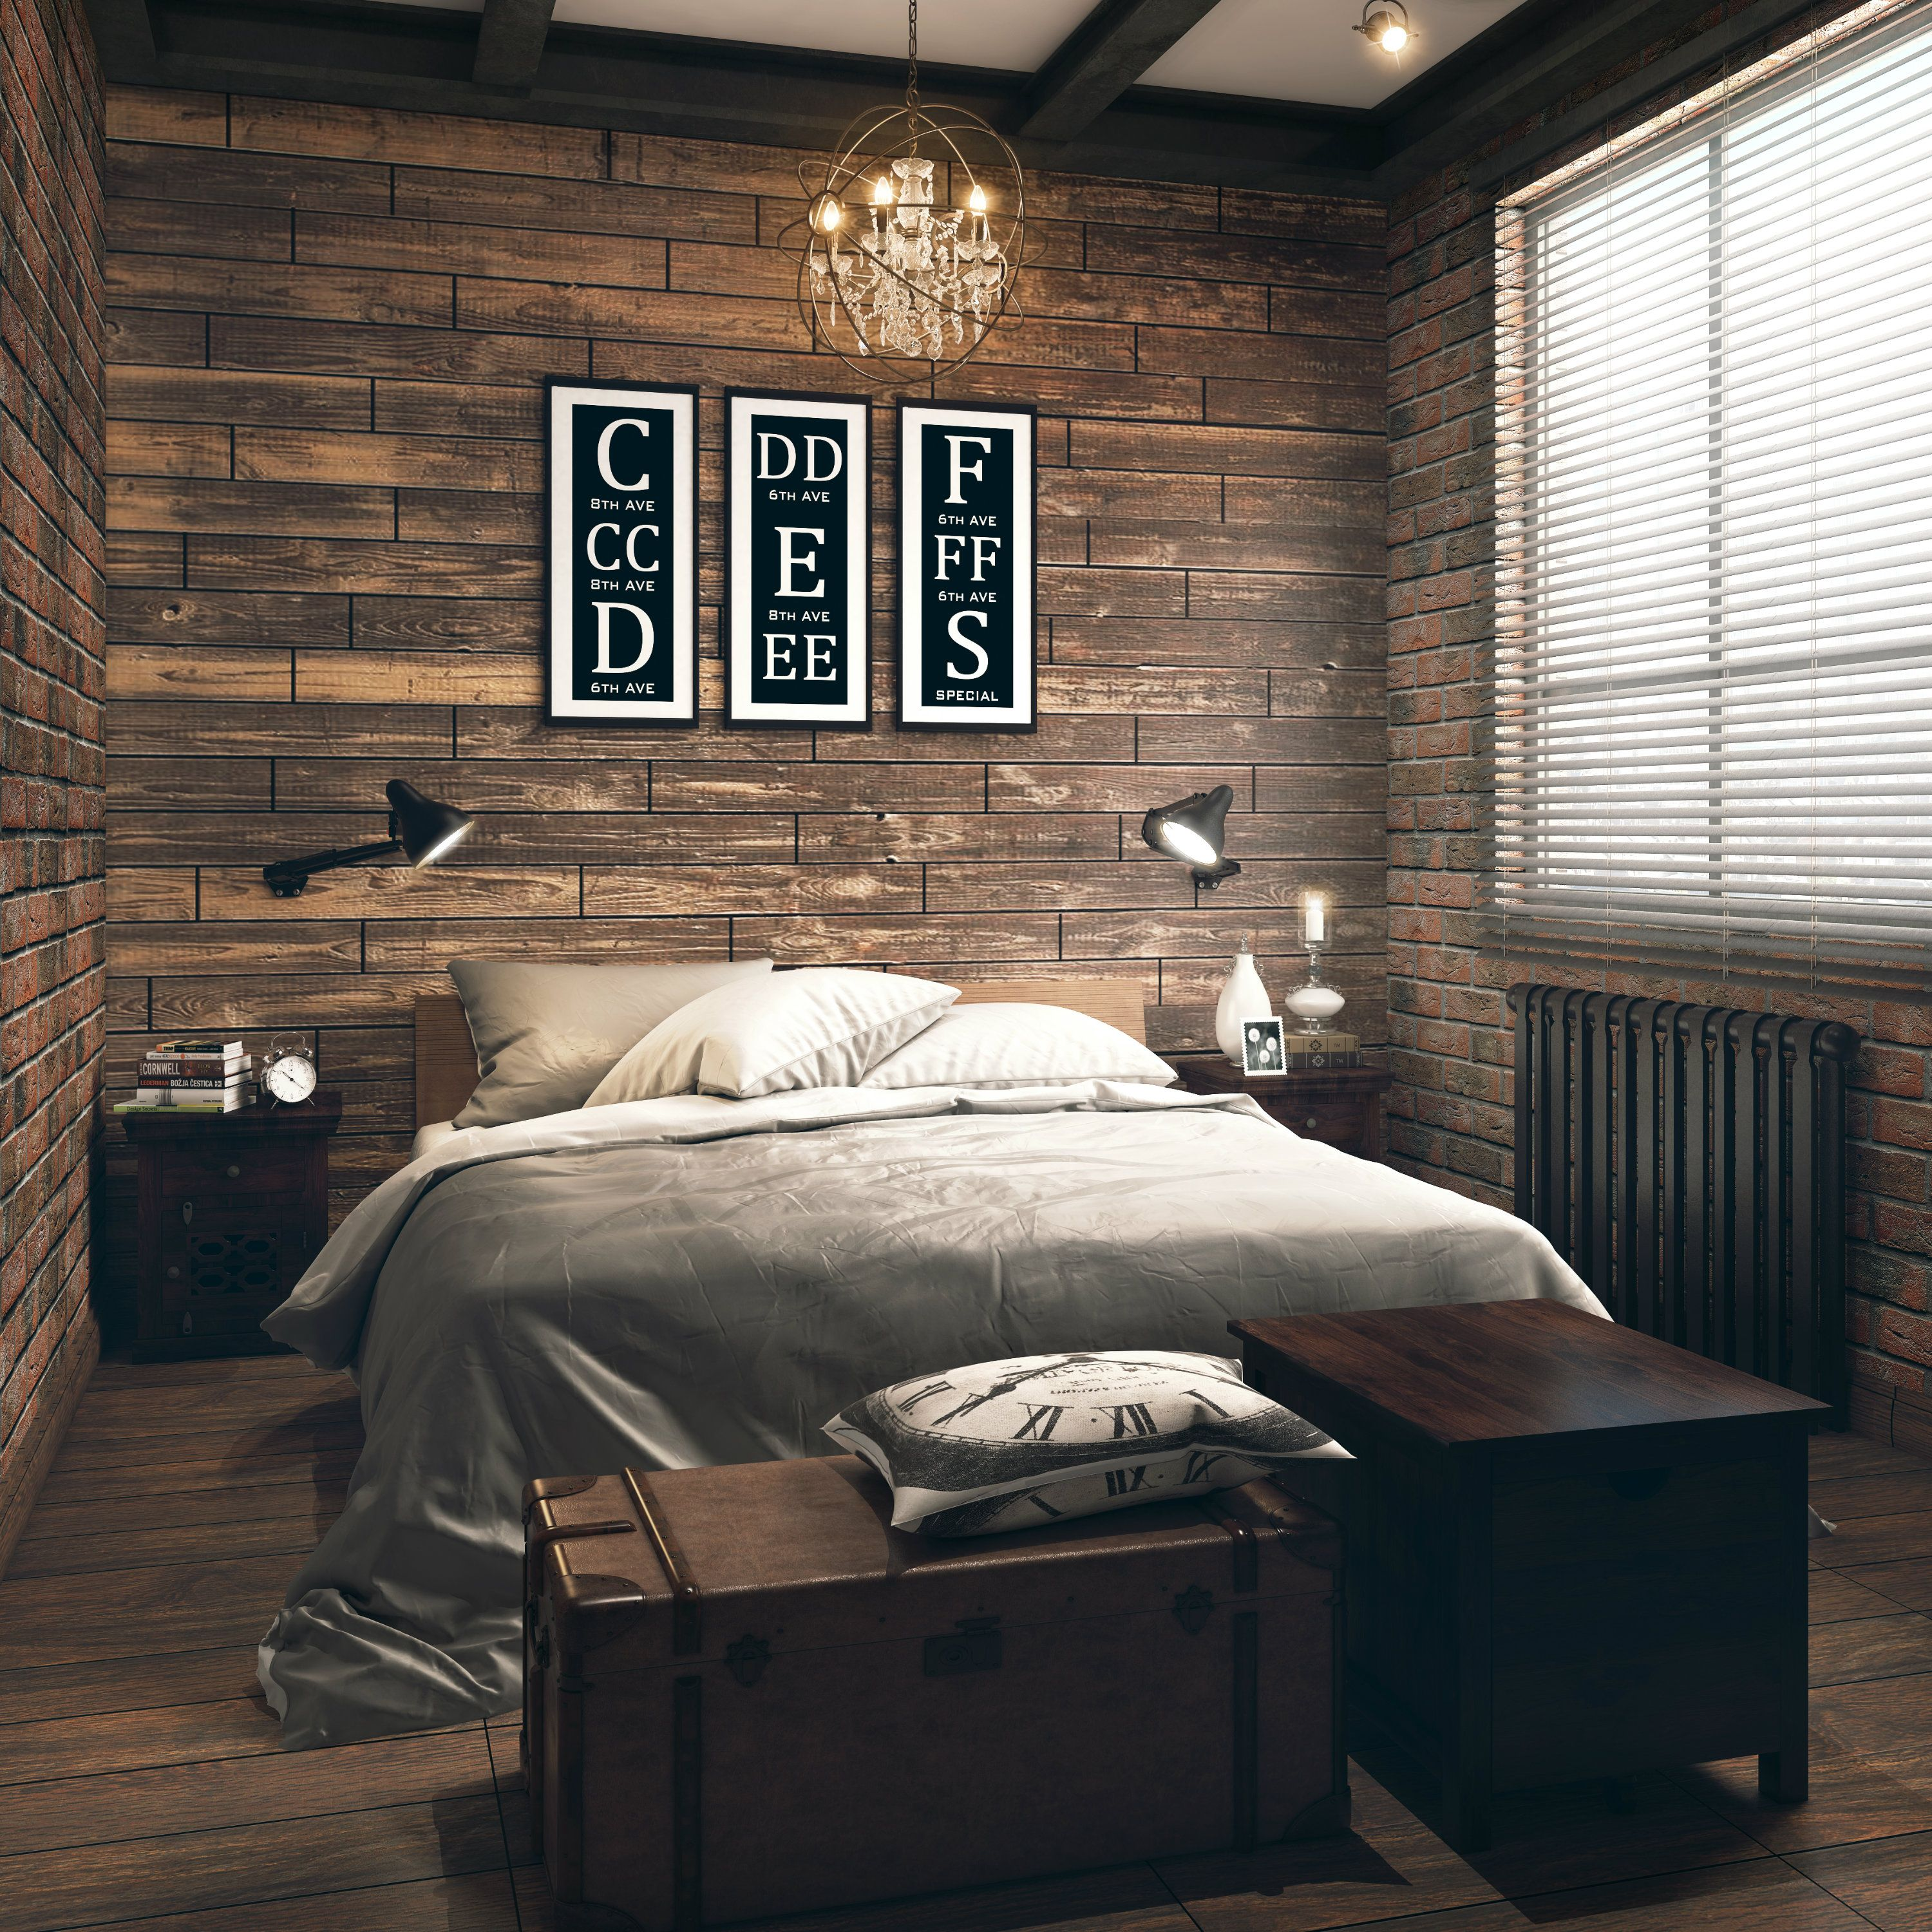 Industrial Themed Bedroom Raw Finished Wood Wooden Furniture Compact Bedroom Rustic Loo Industrial Bedroom Design Bedroom Design Contemporary Bedroom Design